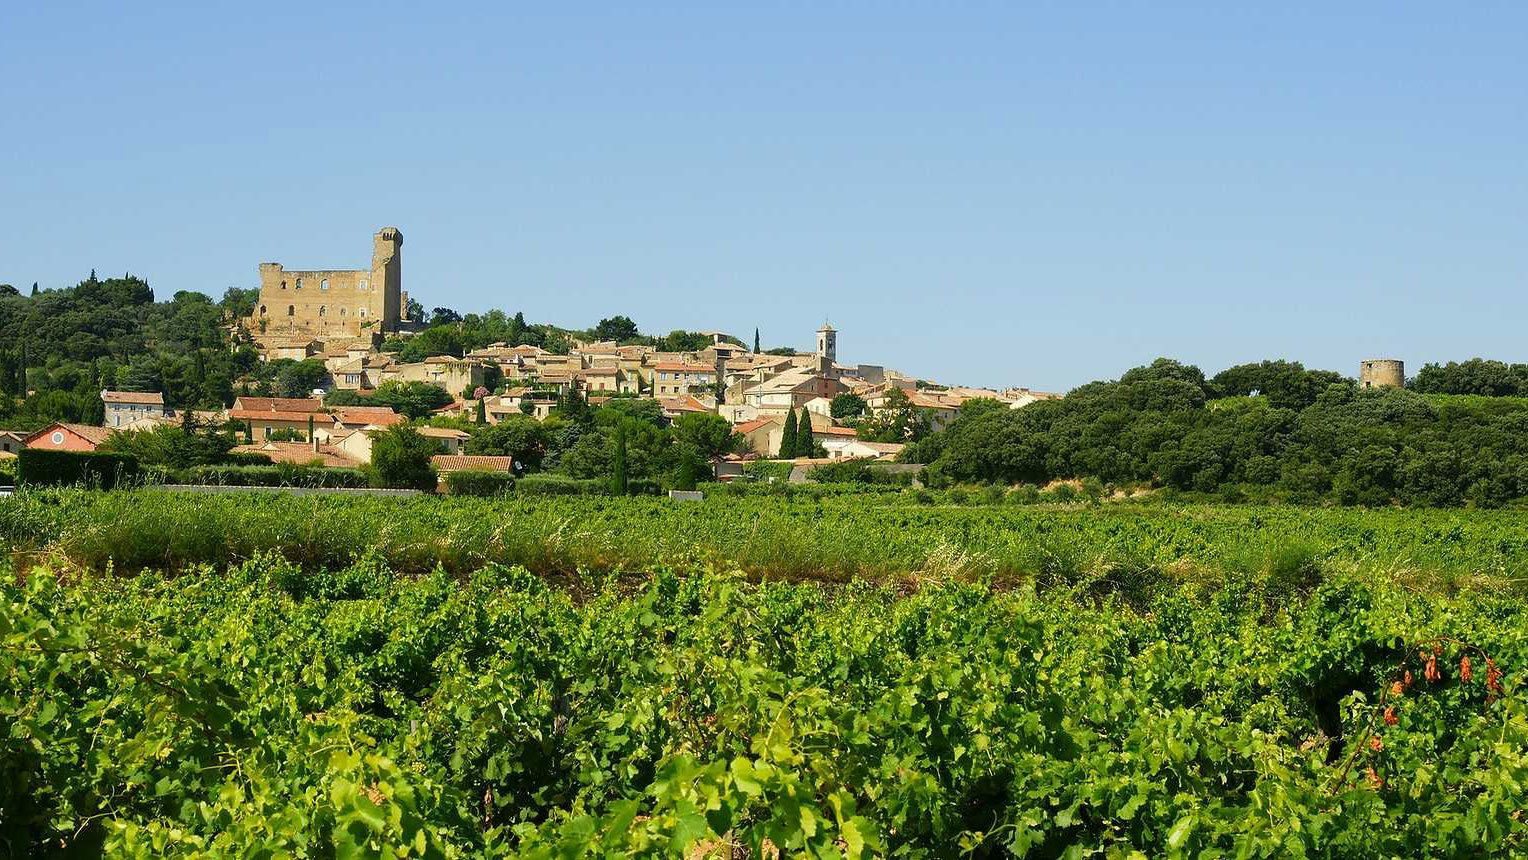 vineyard outside the town of chateauneuf du pape, Marseille